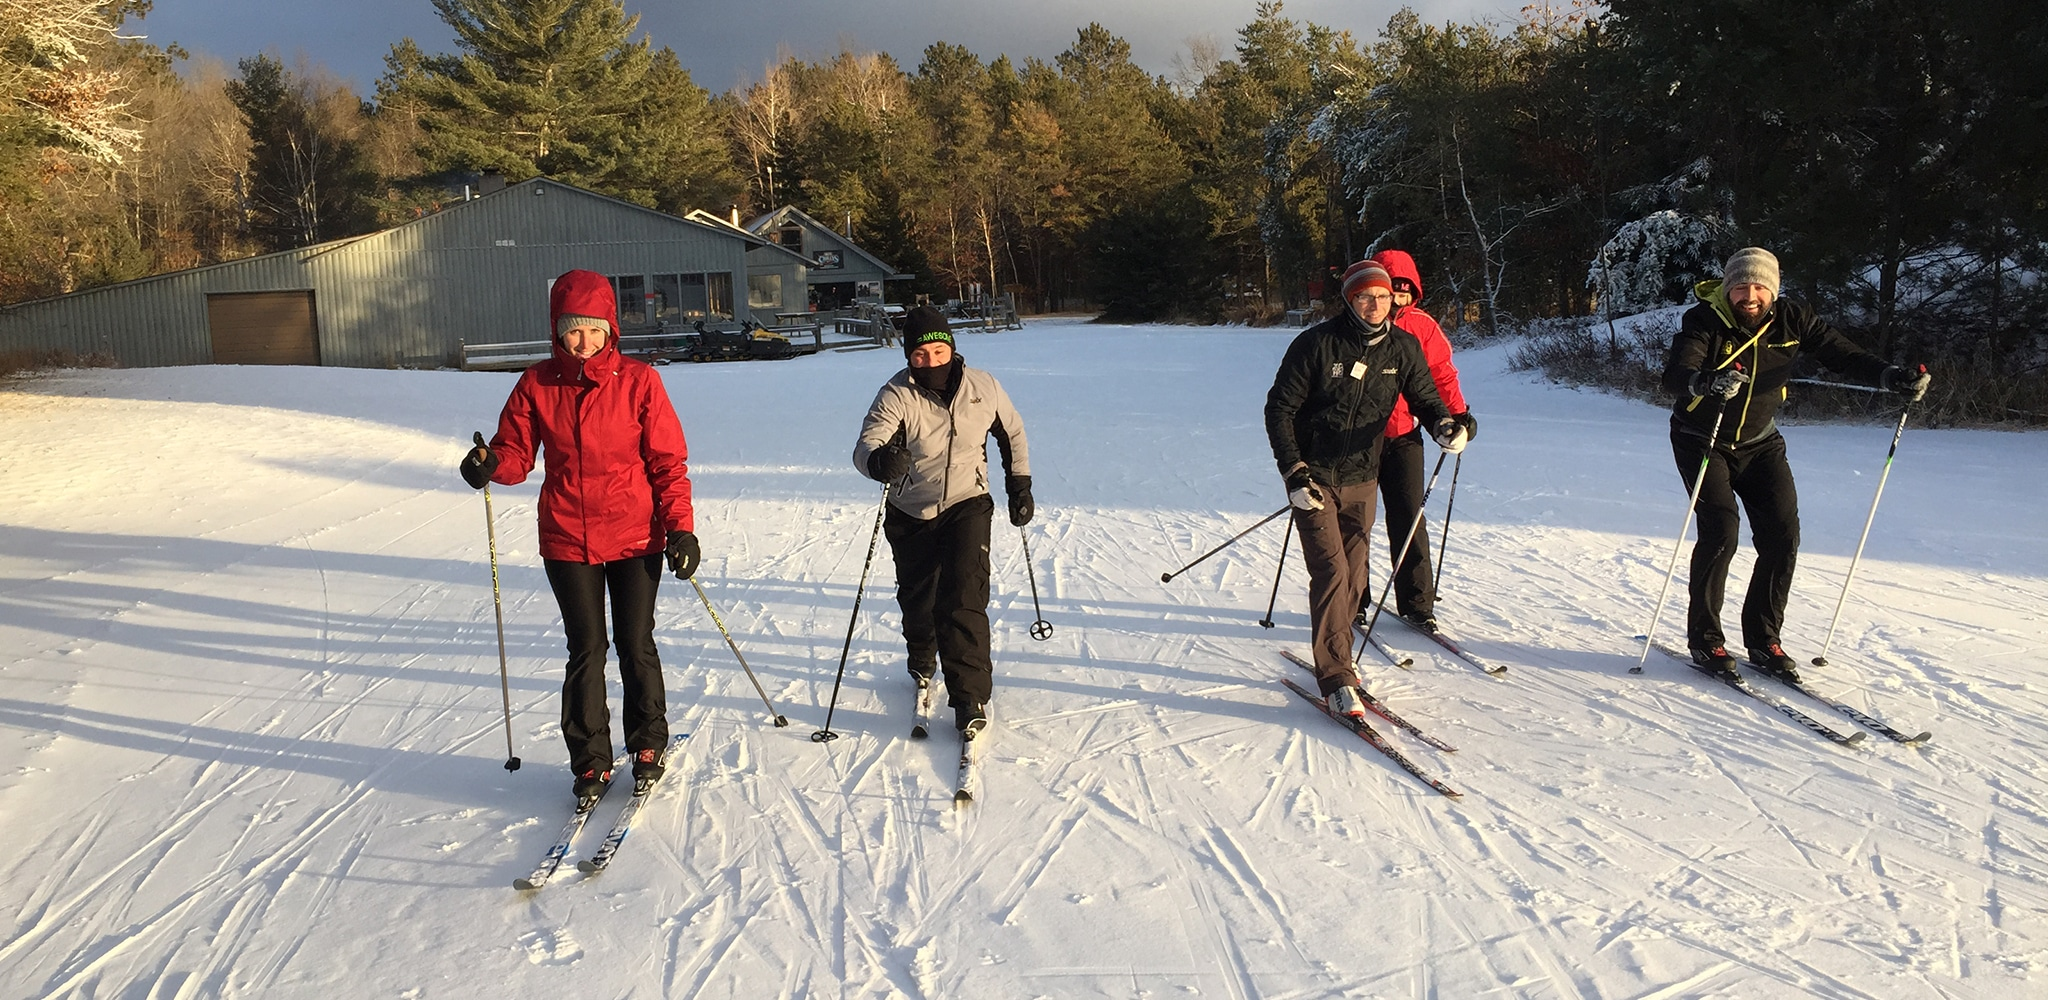 XC Ski Conditions 1/4 - Grayling MI